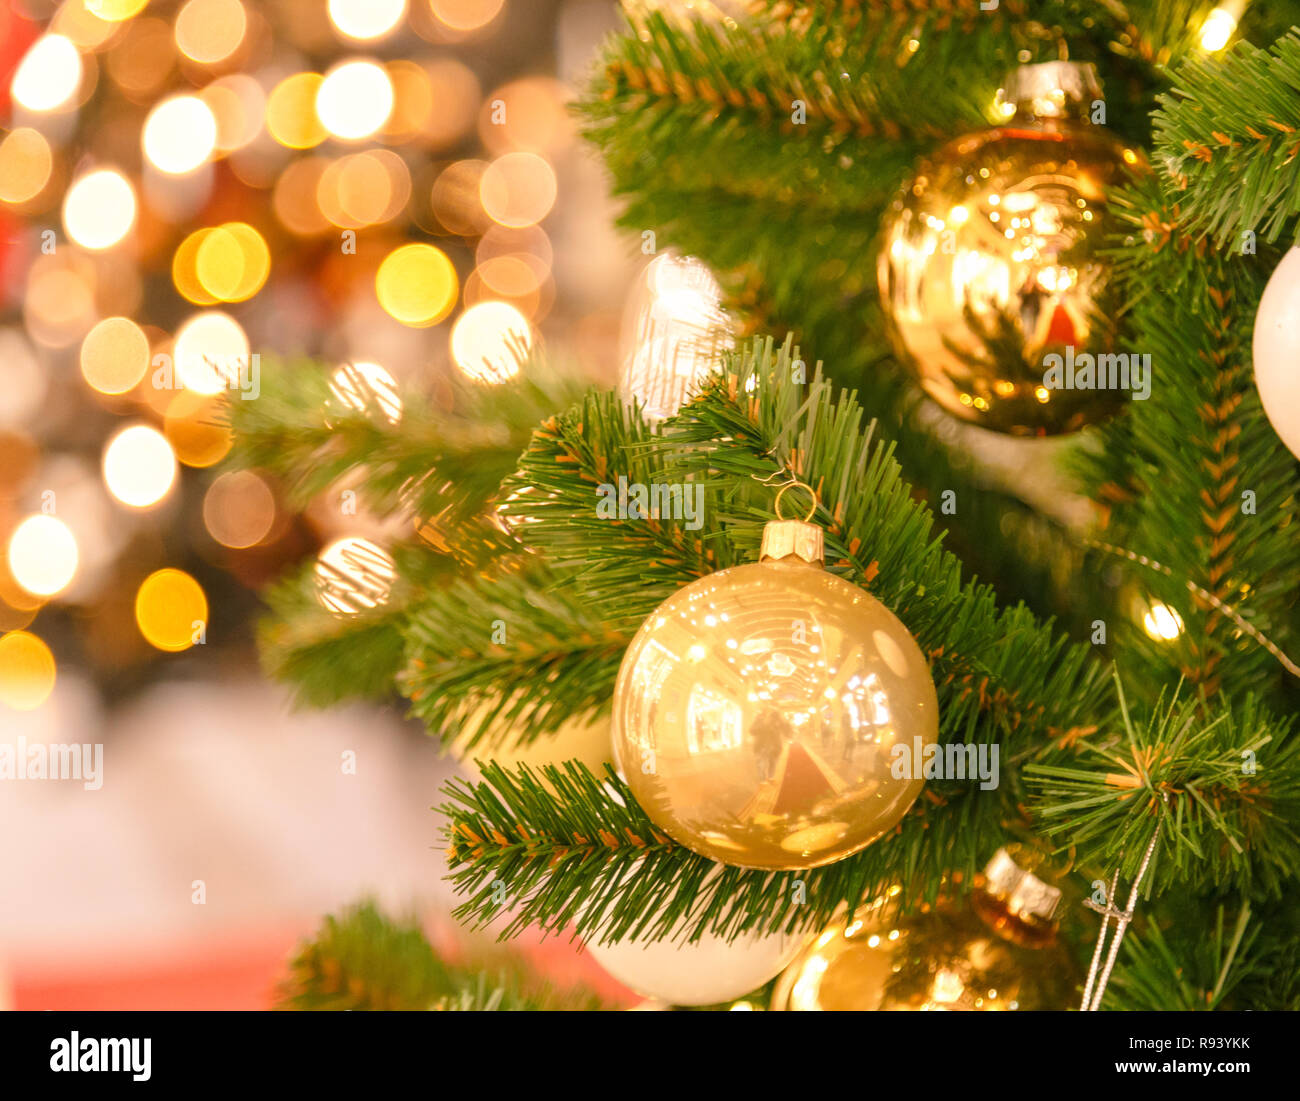 Christmas Scene With Tree Gifts And Fire In Background Stock Photo Alamy